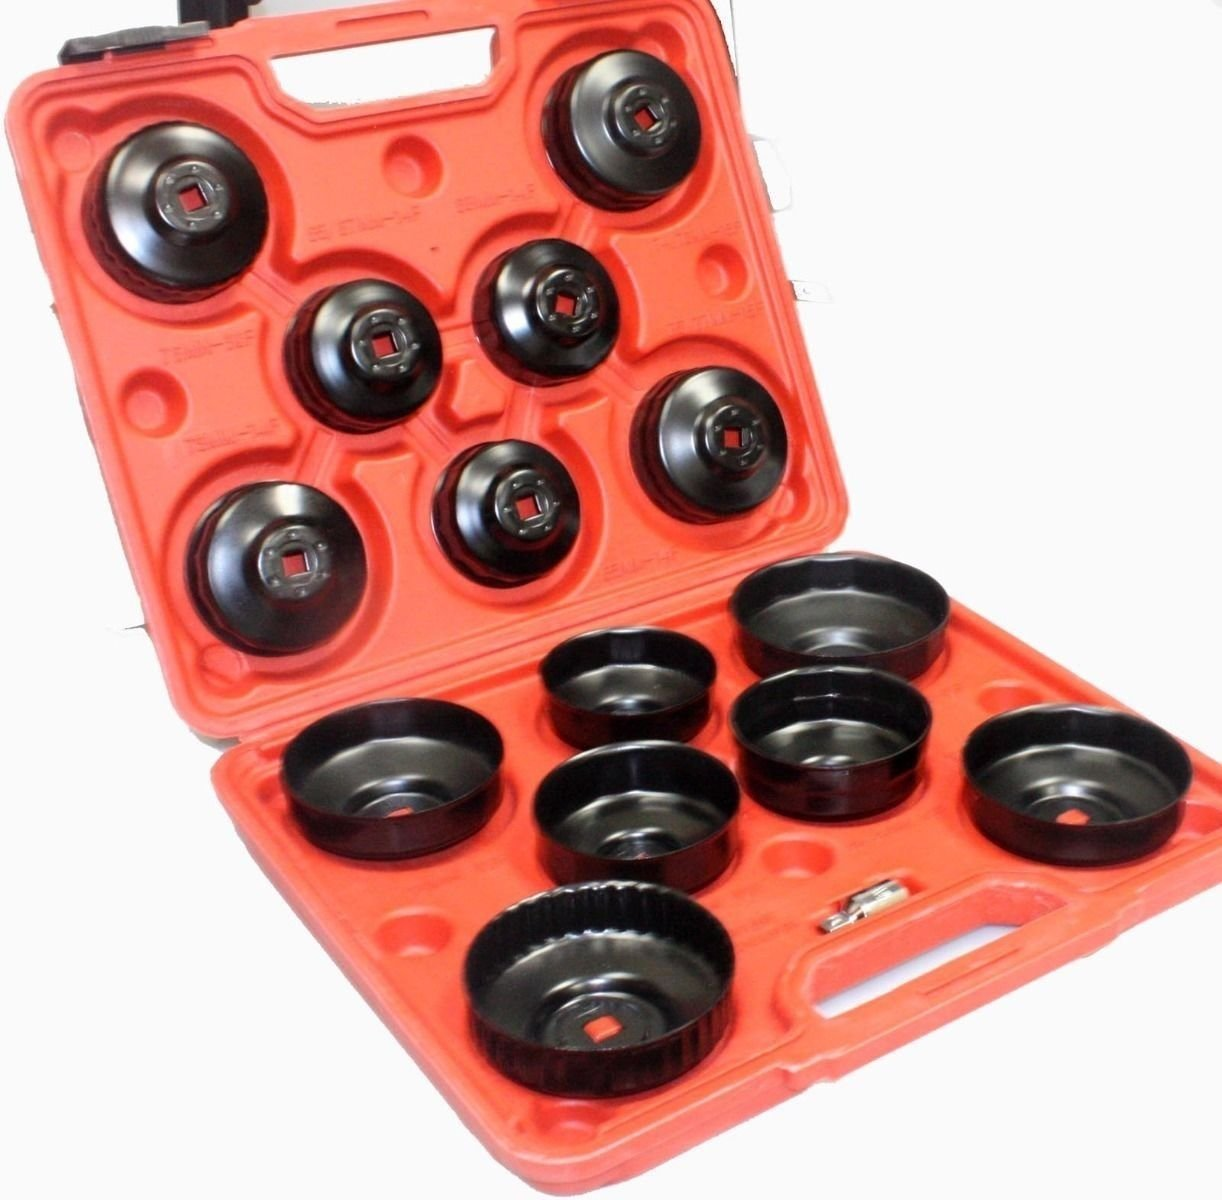 WIN.MAX 15Pcs Cup Type Oil Filter Cap Wrench Socket Removal Tool Set W/case 3/8'' Drive H